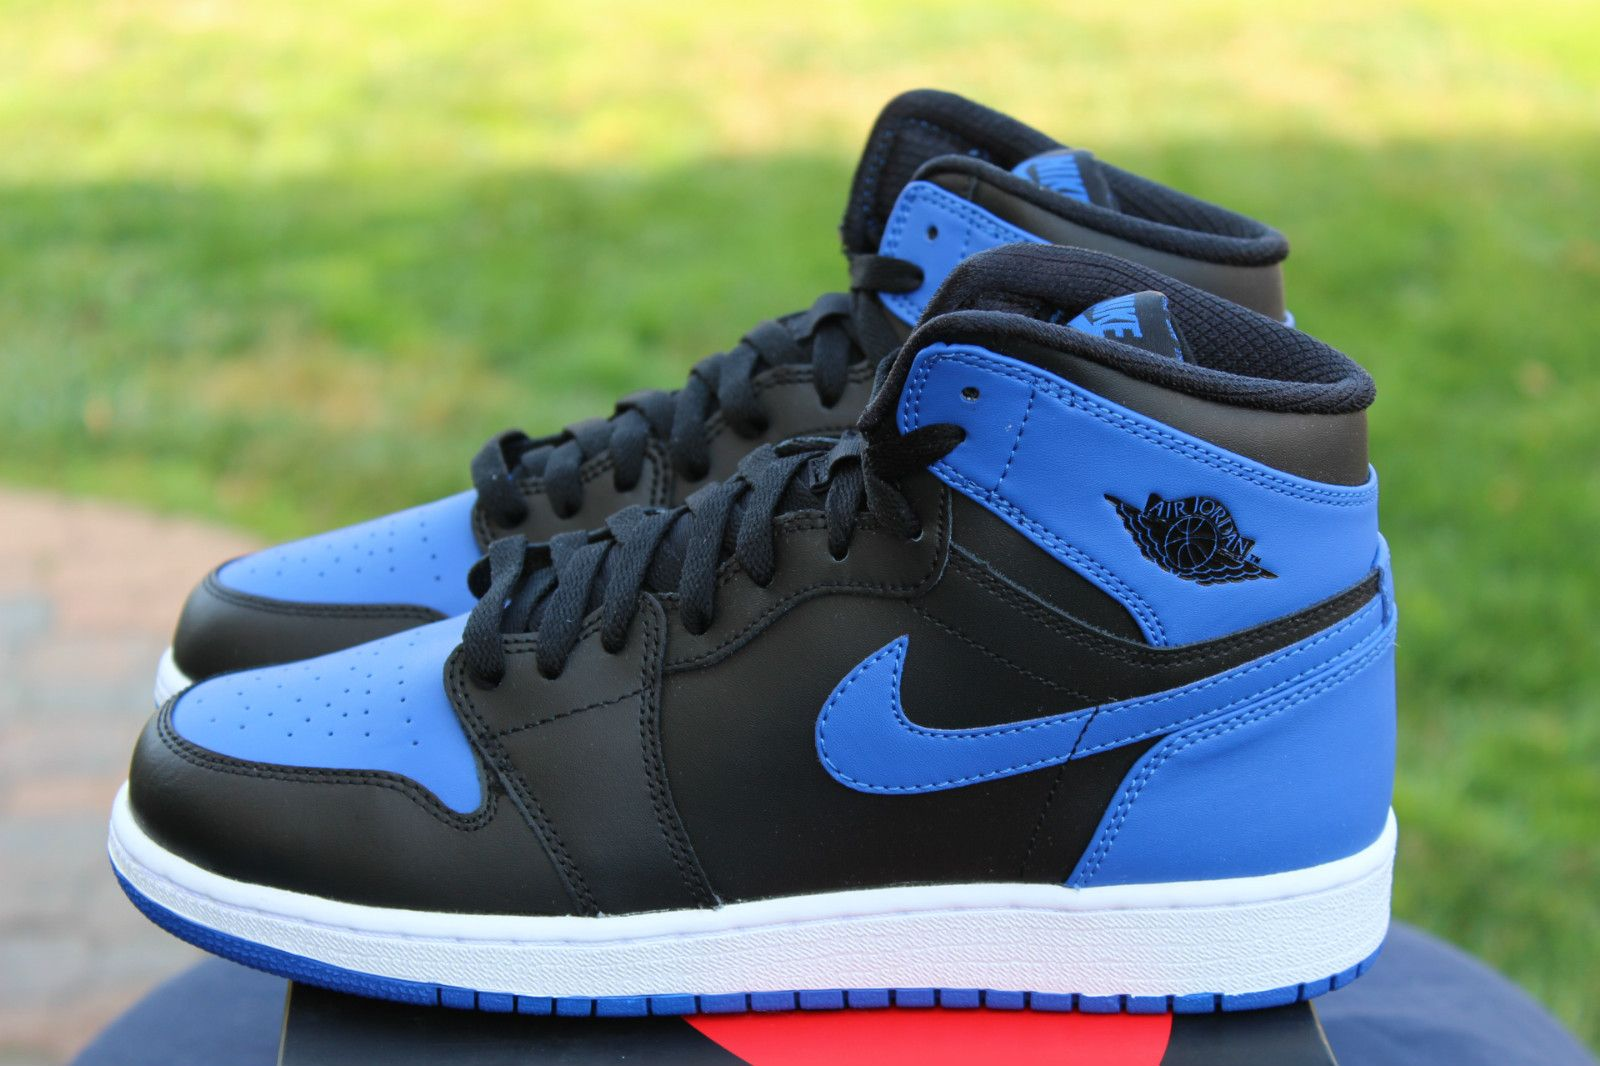 Air Jordan 1 Retro high OG GS Black/Royal Blue